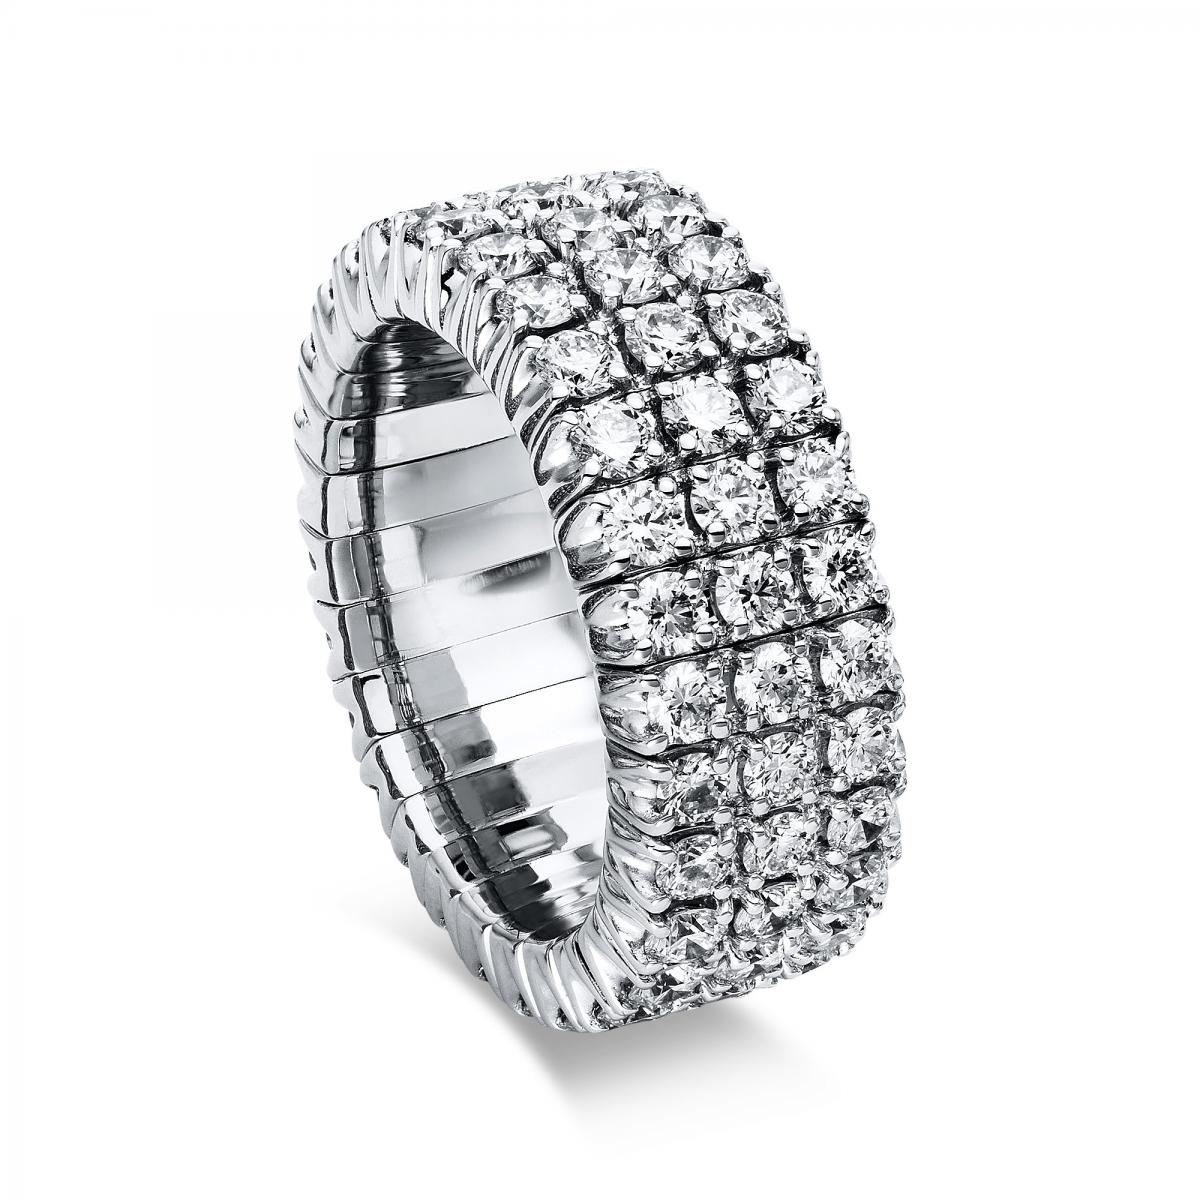 Ring 18 ct white gold with 84 brilliants ca. 3,90 ct, size 53